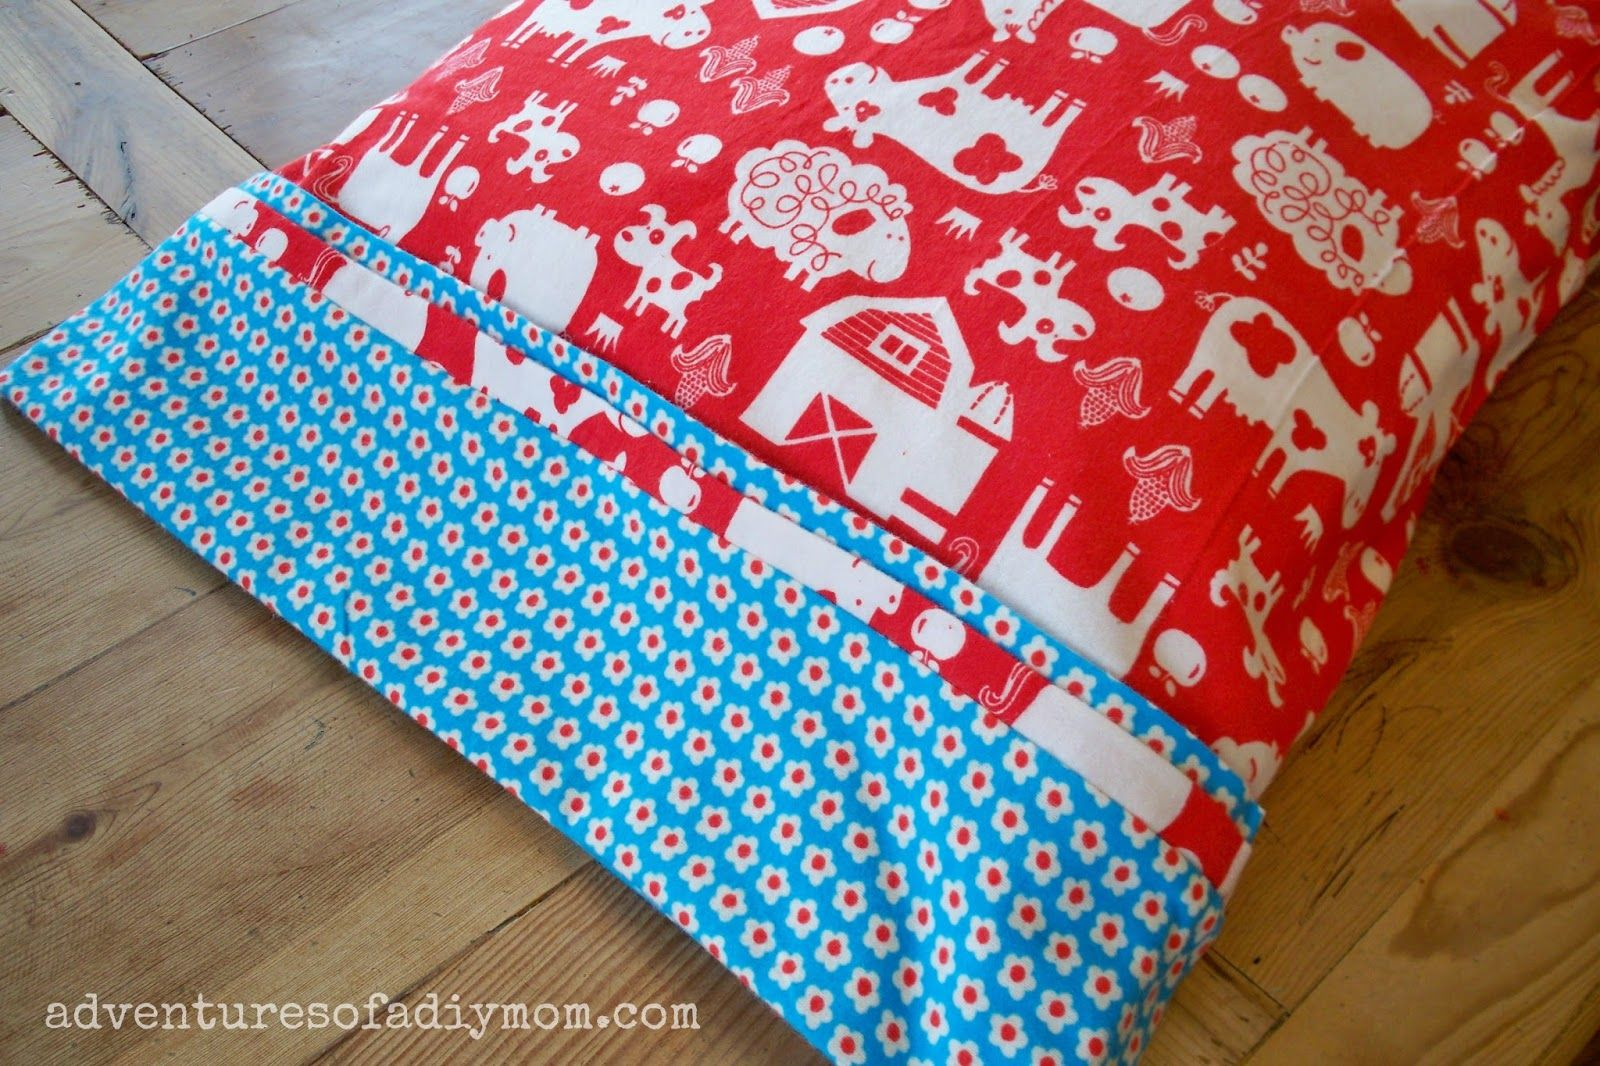 Making Pillowcases Entrancing How To Make An Easy Rolled Pillowcase With Only 3 Seams  Easy Inspiration